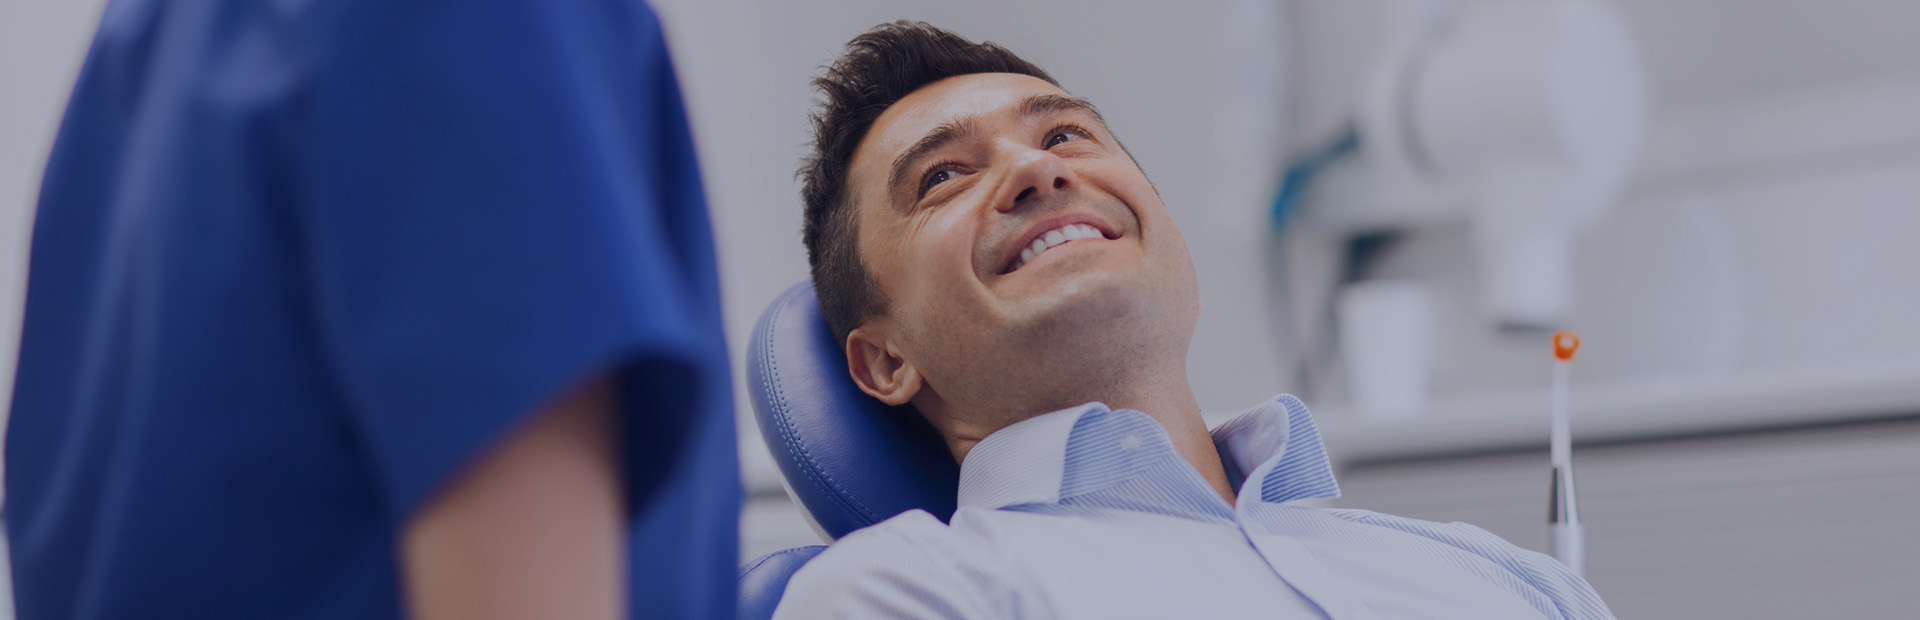 A man in his 30s smiles in the dentist's chair as the dentist explains the best way to remove dentre adhesive from mouth gums.